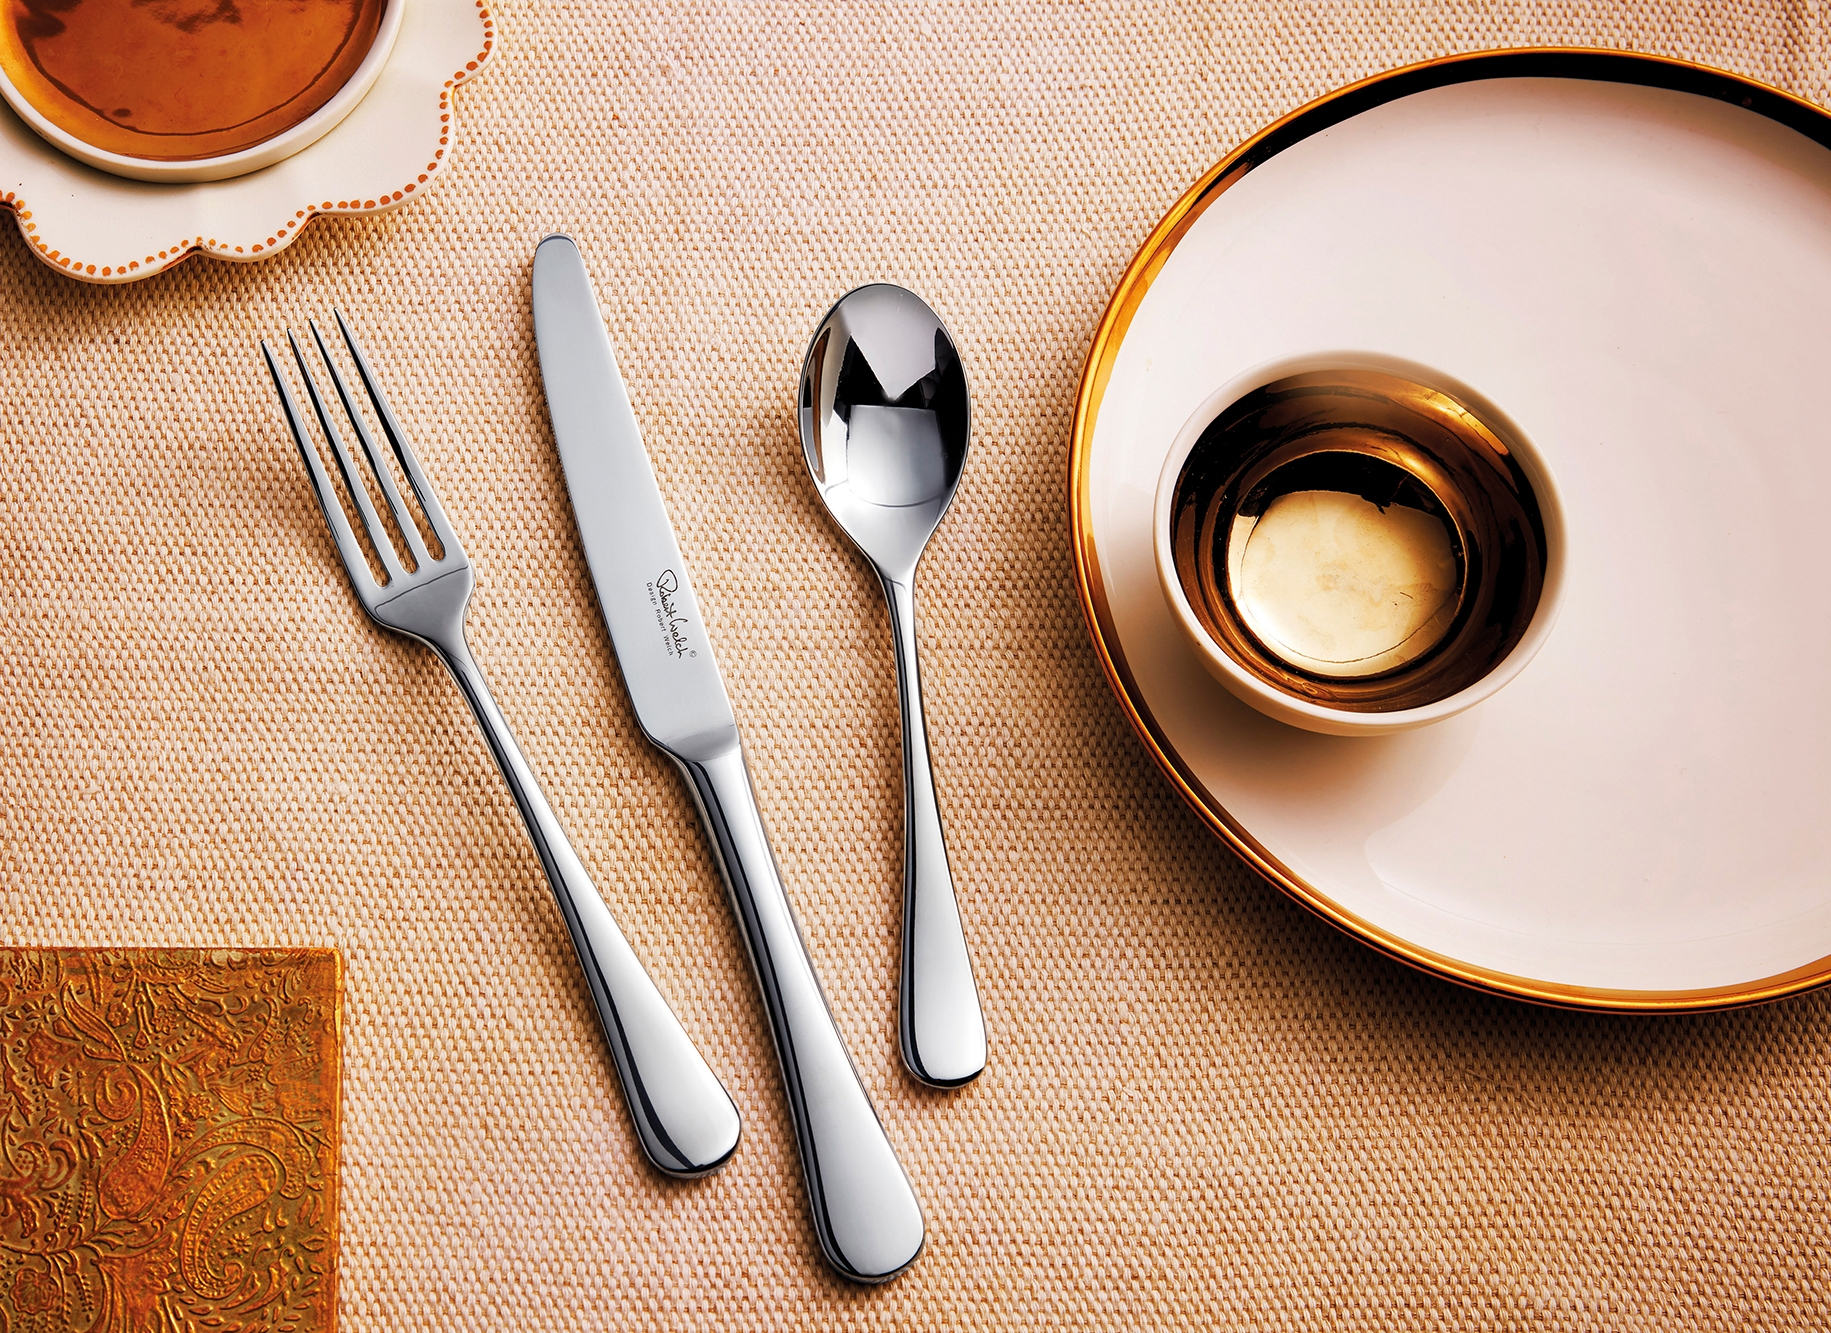 photo of forks and knives at a table